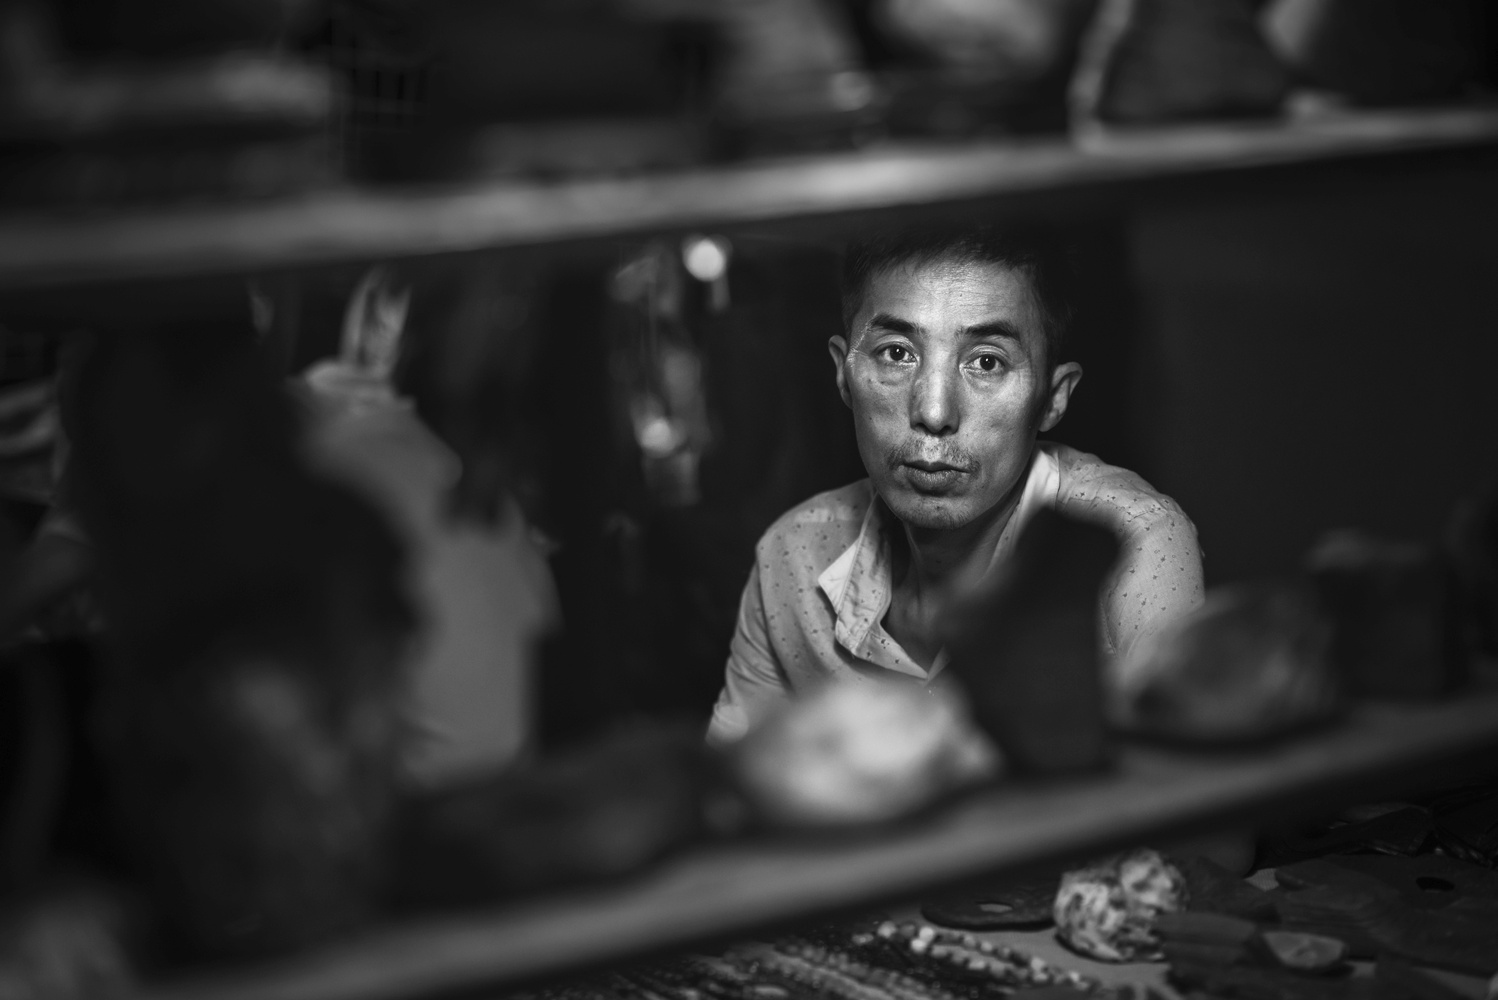 A craftsman at the night market in Dunhuang by Léonard Rodriguez